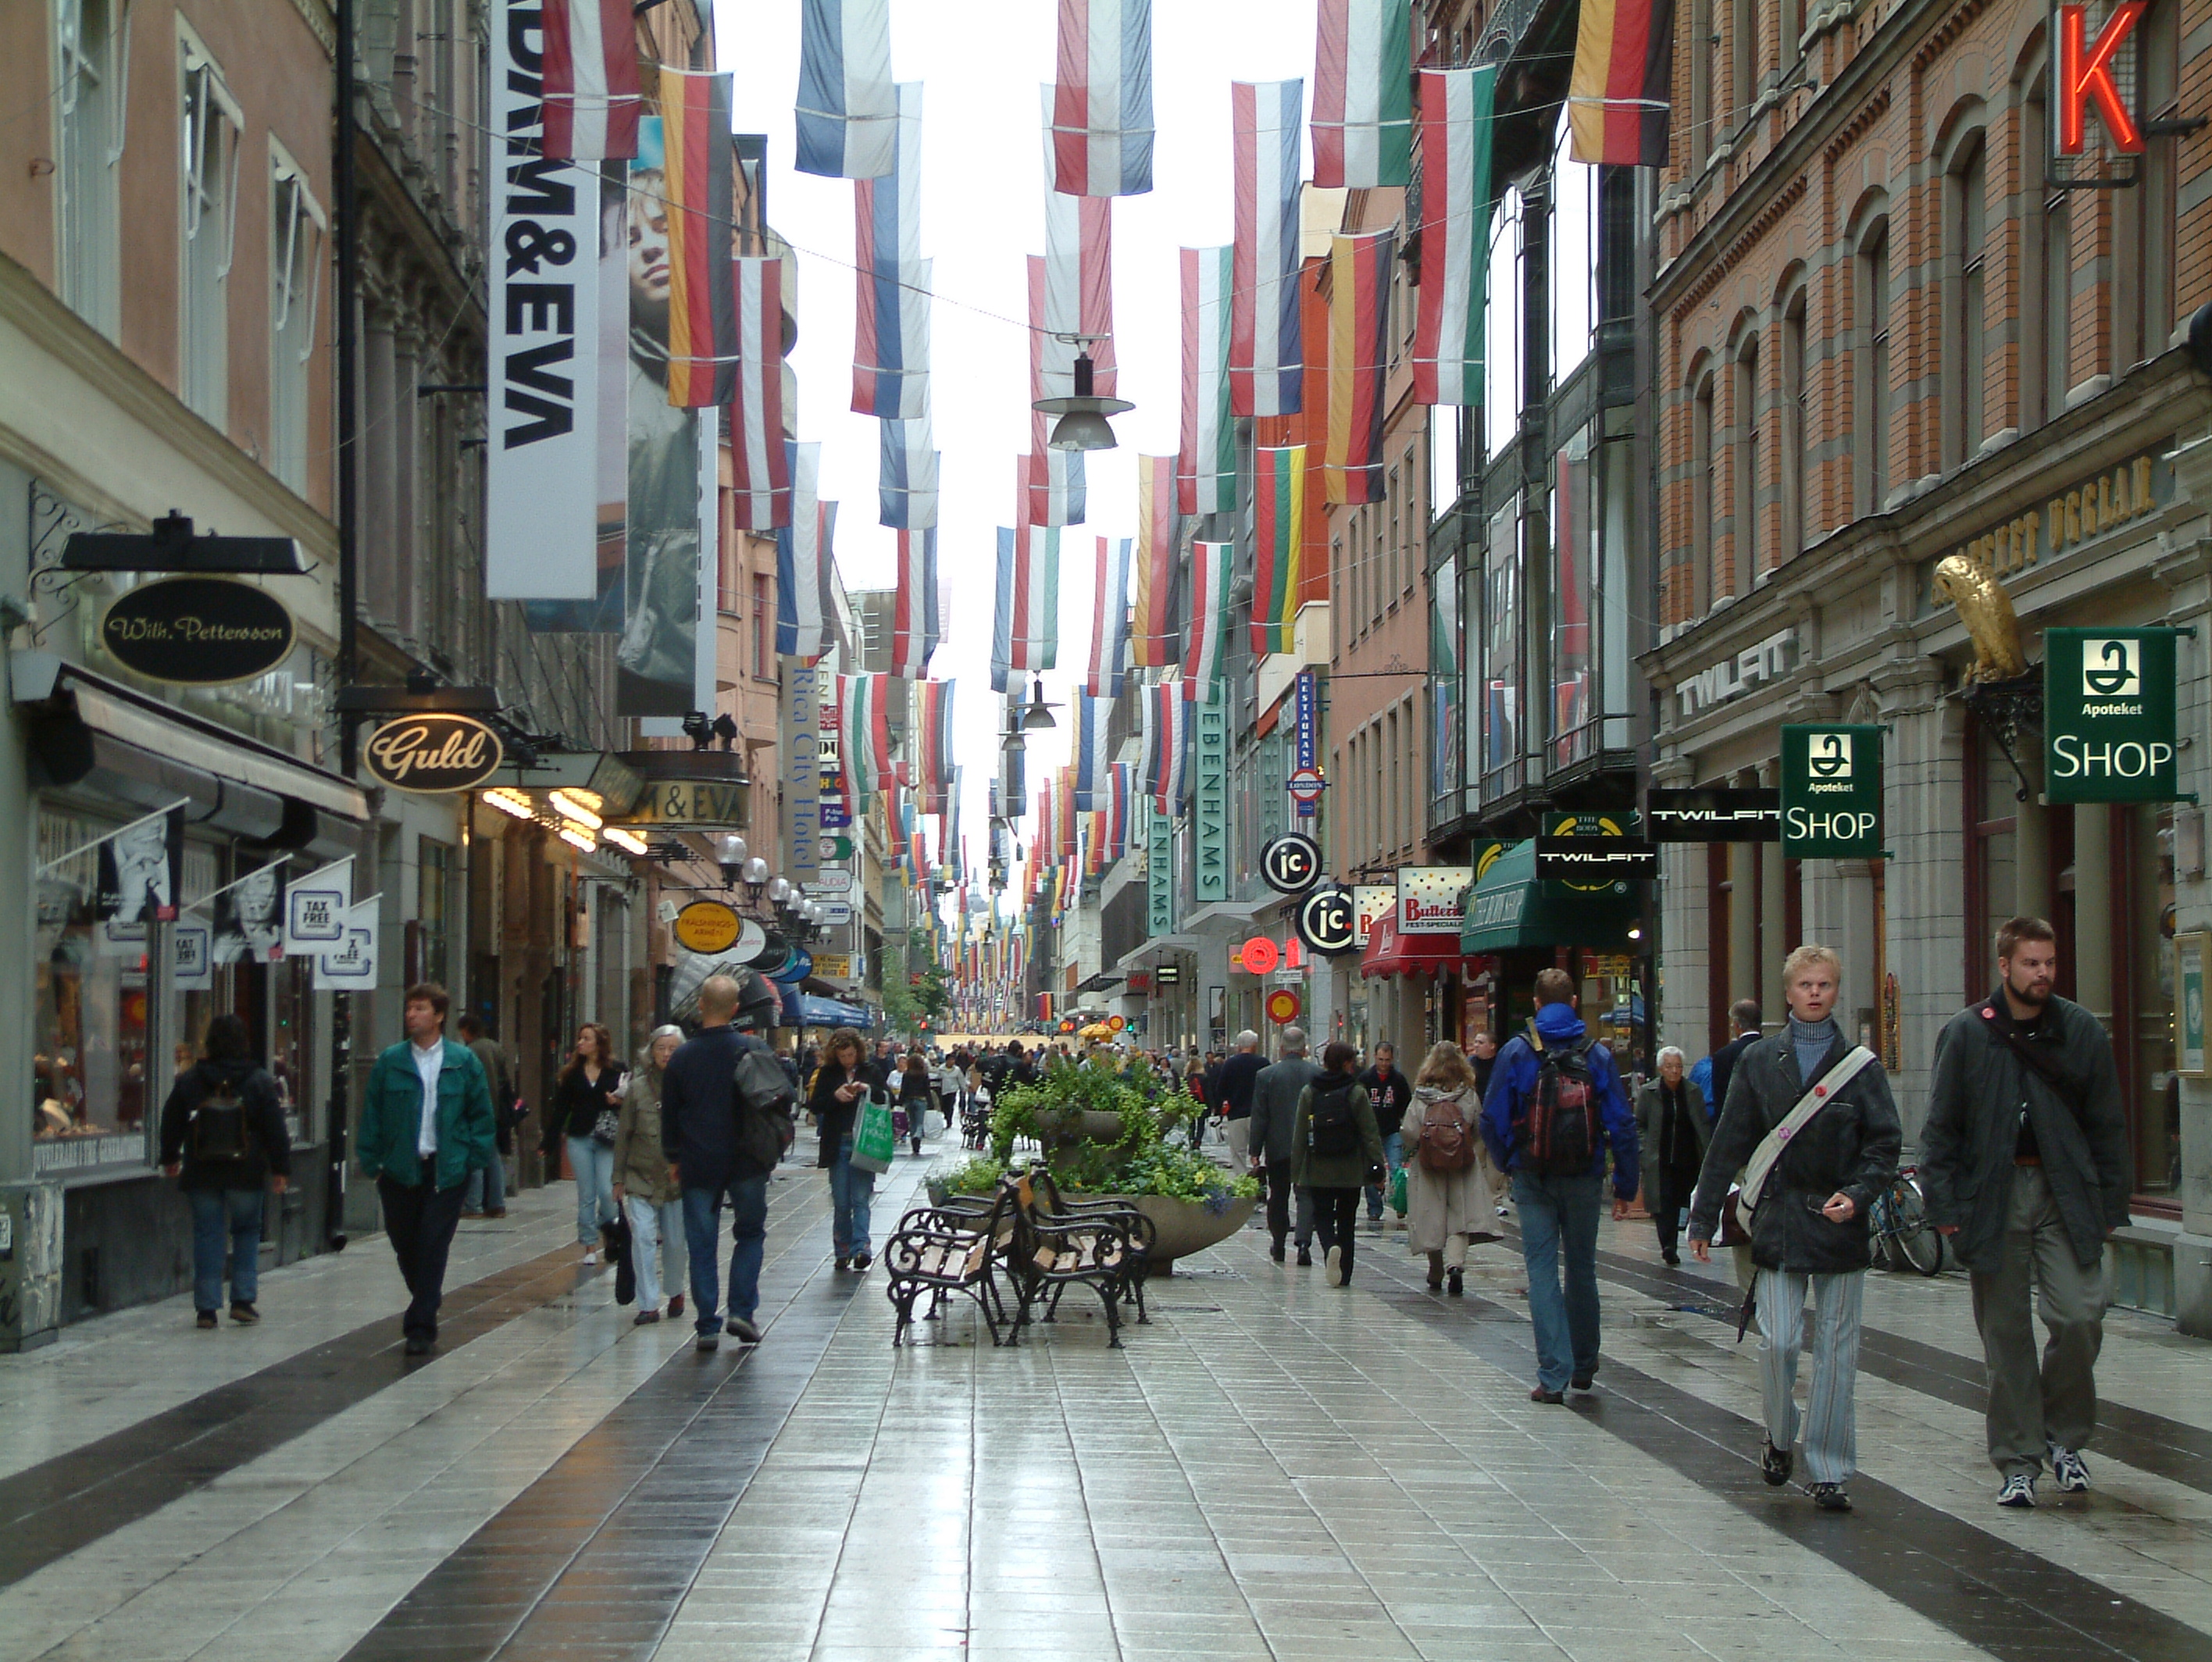 shopping districts and streets